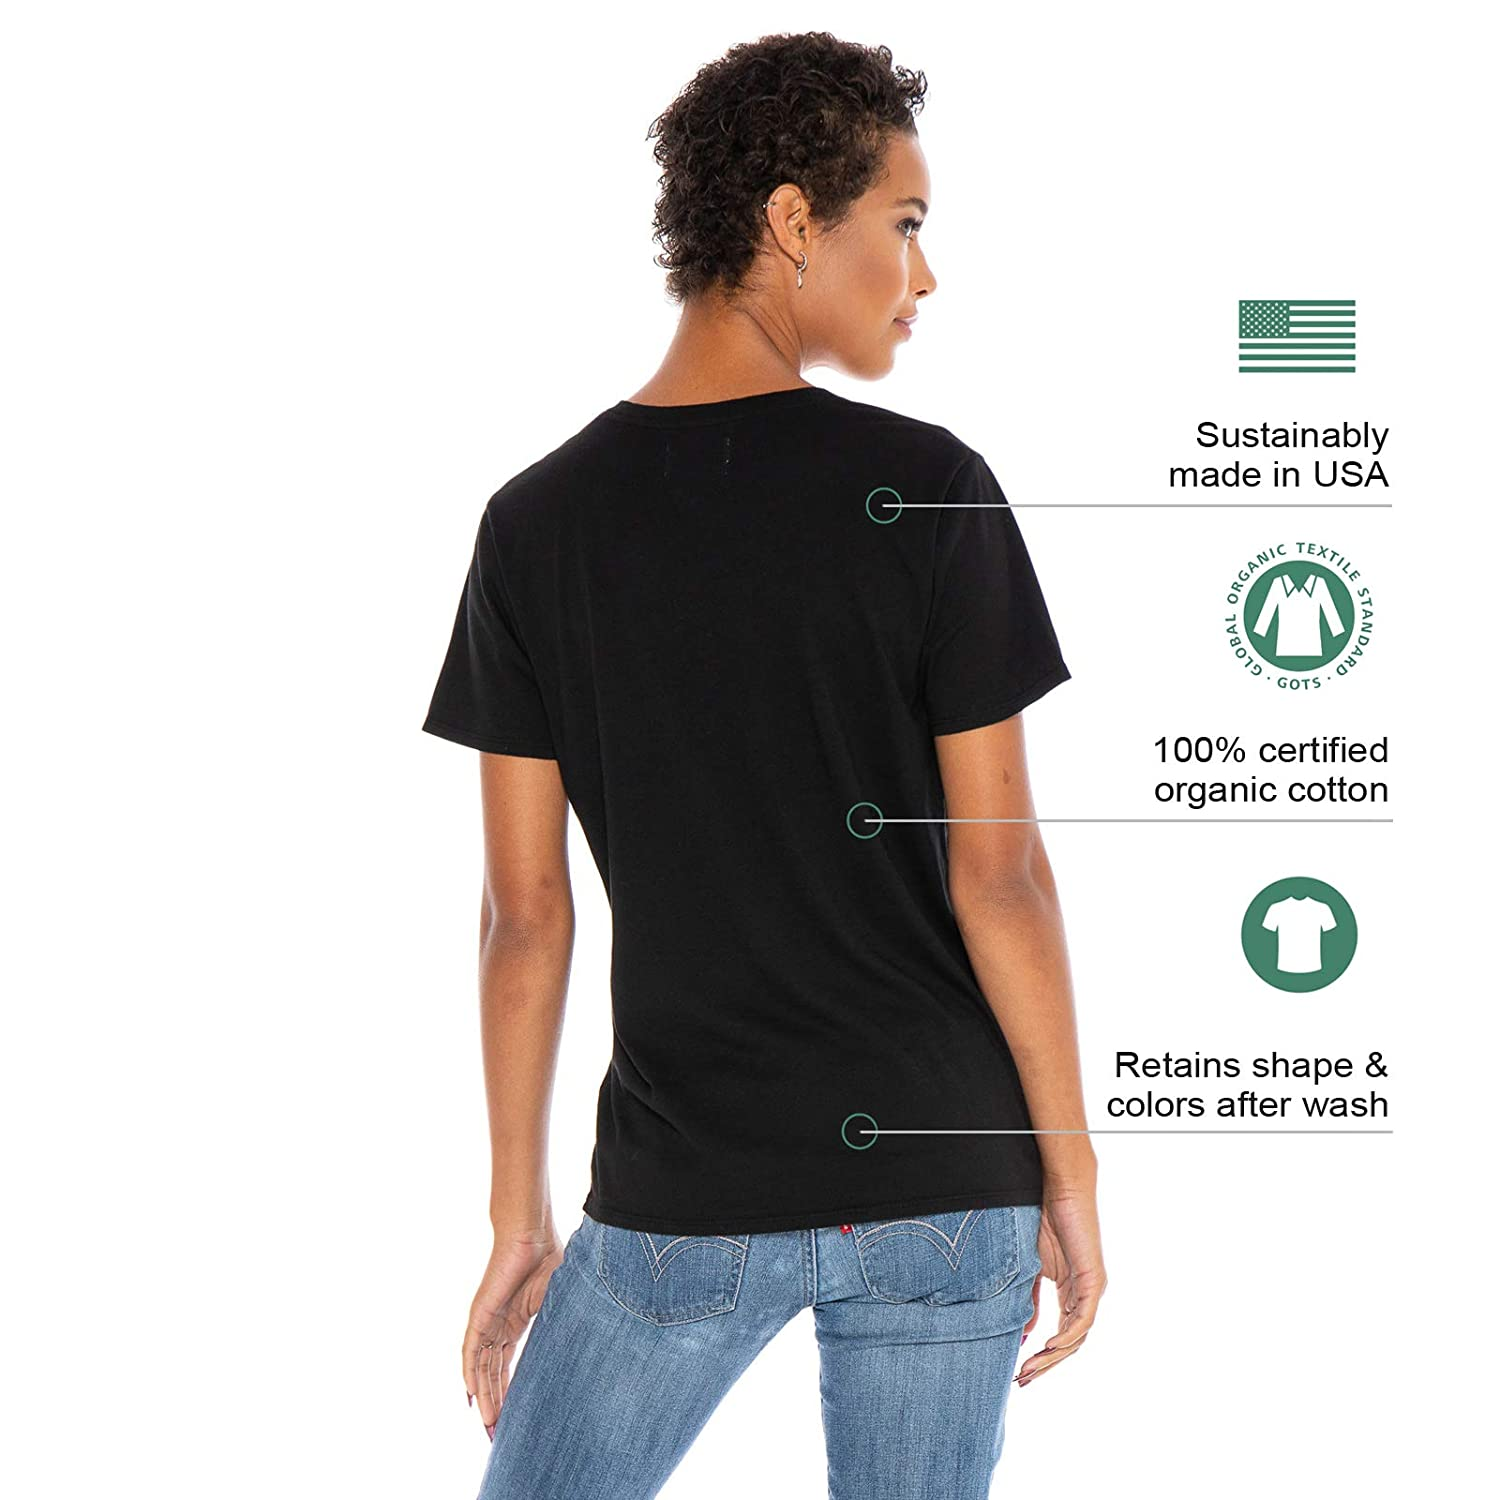 3964cac4c4f1e3 Women's Designer T-Shirt Lightweight Boy Fit Short Sleeve Crew Neck Organic  Cotton Pre-Shrunk Embroidered - Made in USA at Amazon Women's Clothing  store: